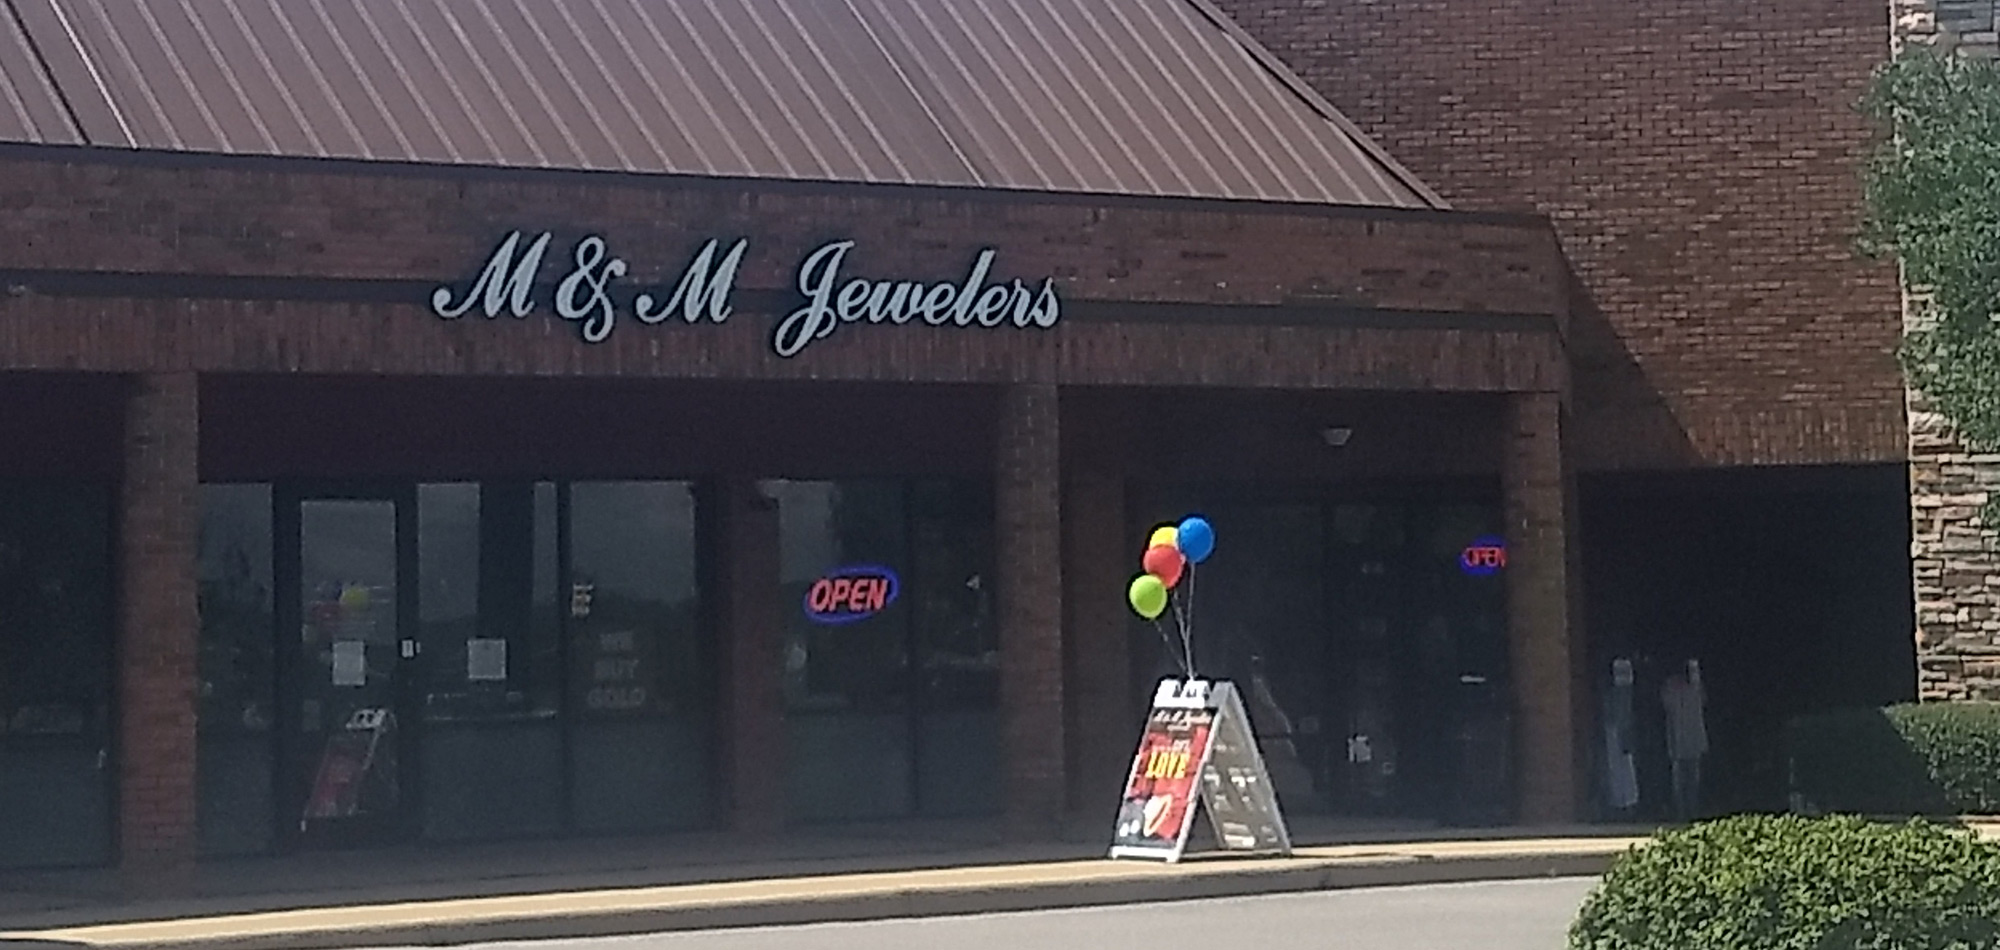 Visit M & M Jewelers In Birmingham, AL For All Your Jewelry & Watch Needs